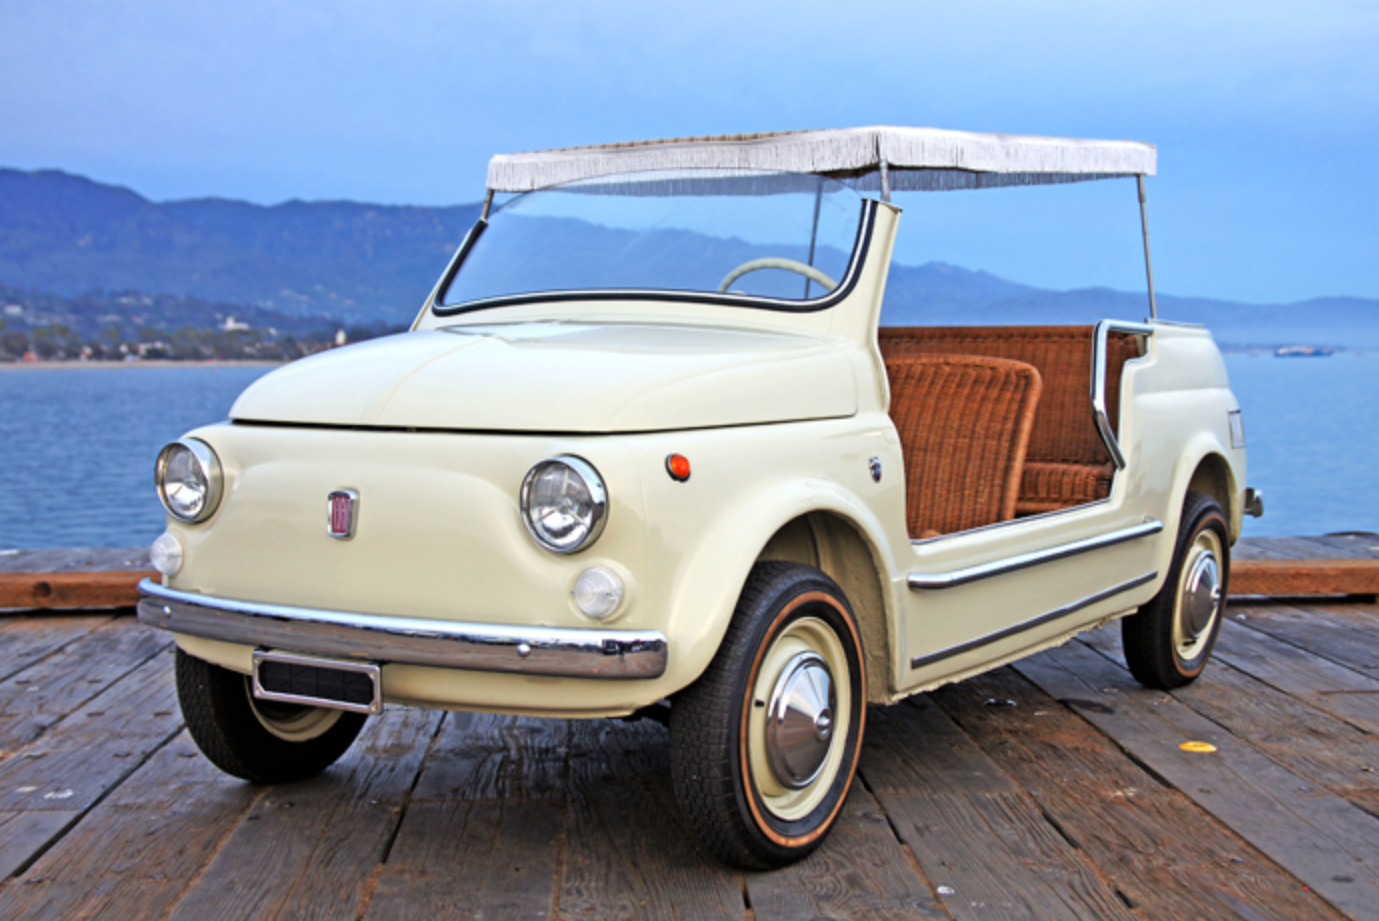 1965 Fiat 500 Jolly Classic Italian Cars For Sale